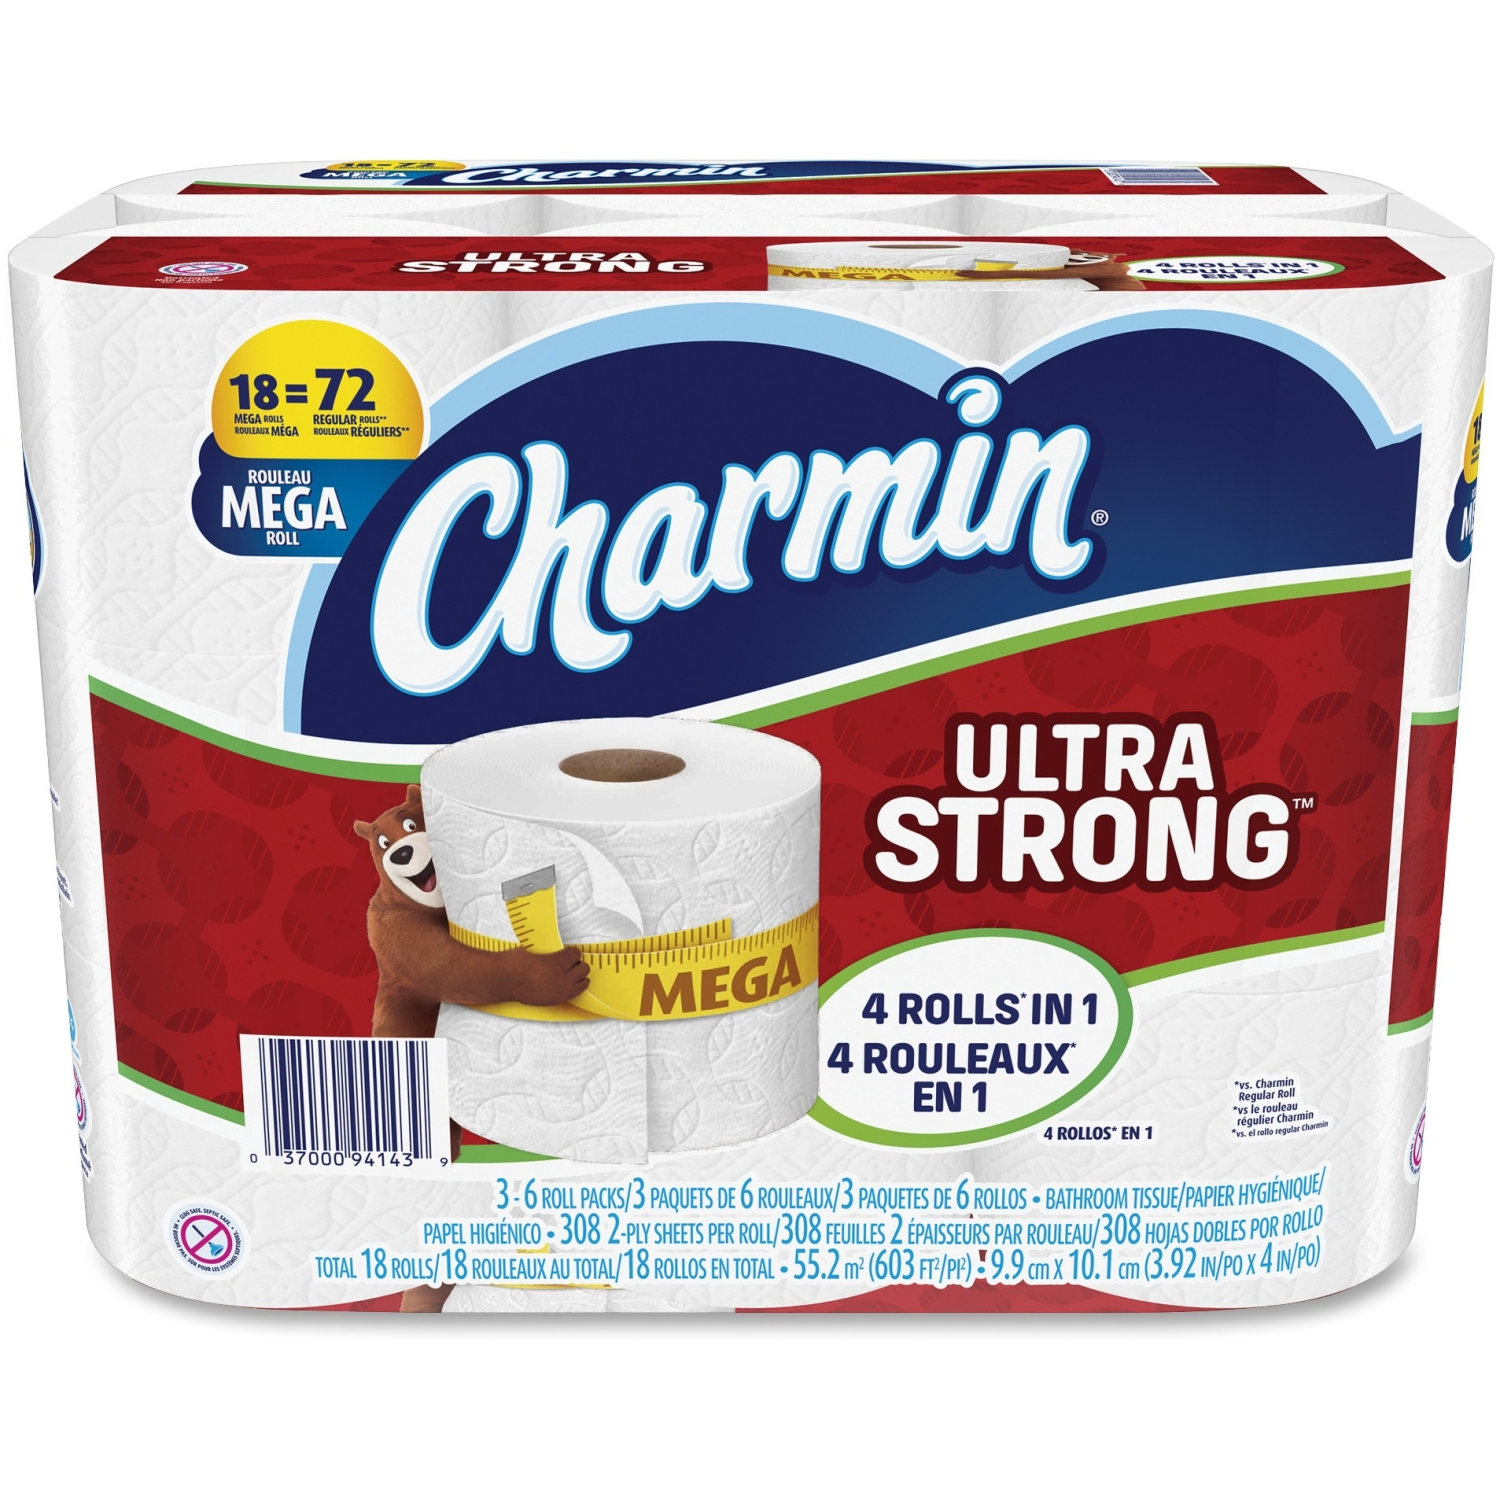 Charmin Ultra Strong Toilet Paper, 18 Mega Rolls by Procter & Gamble